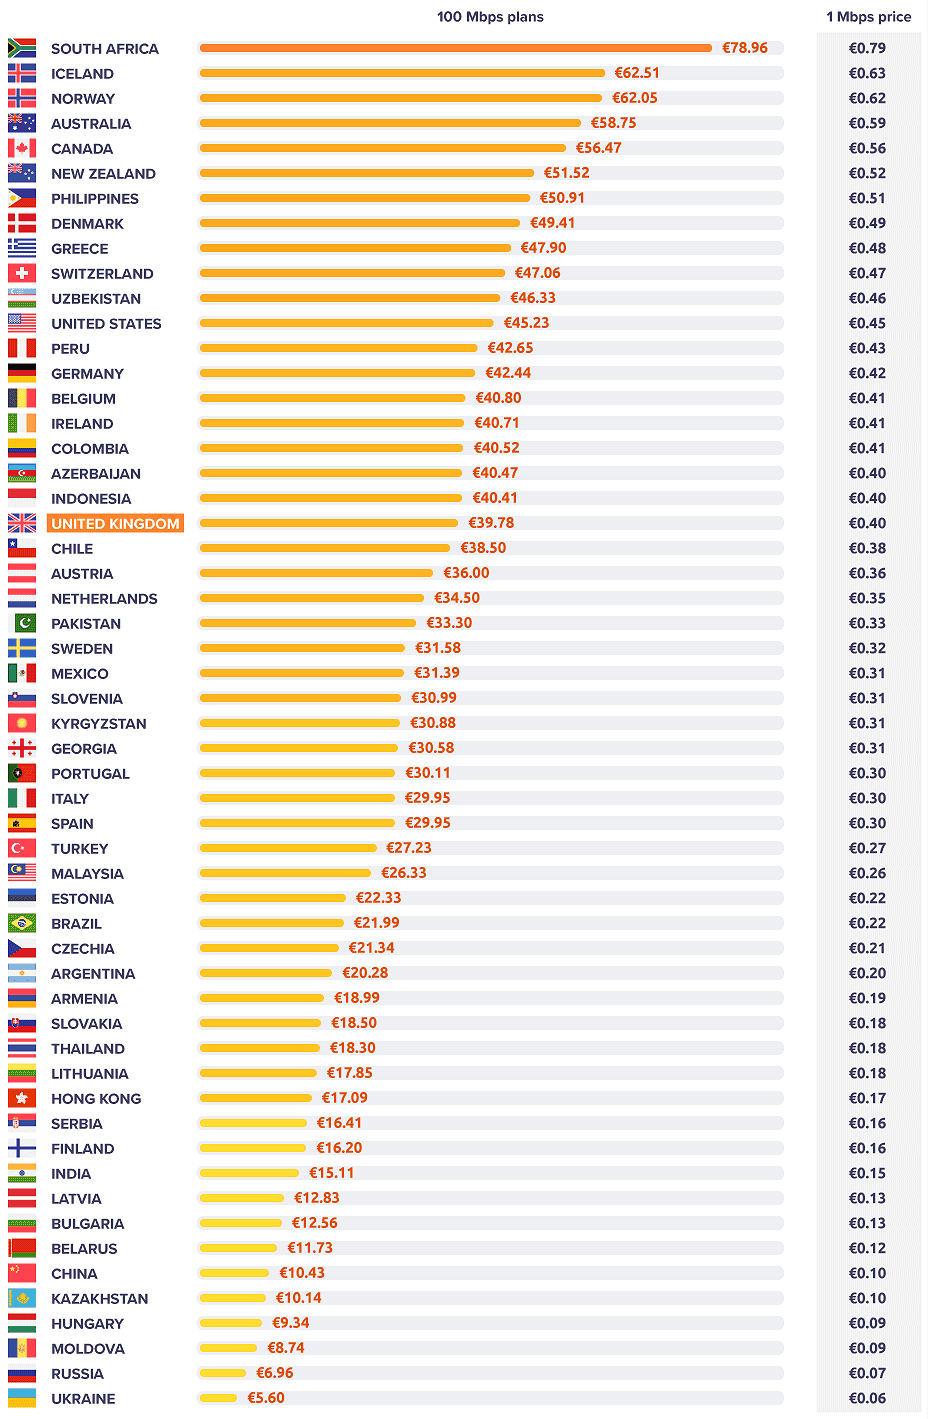 country-ranking-100mbps-broadband-prices-uk-isp